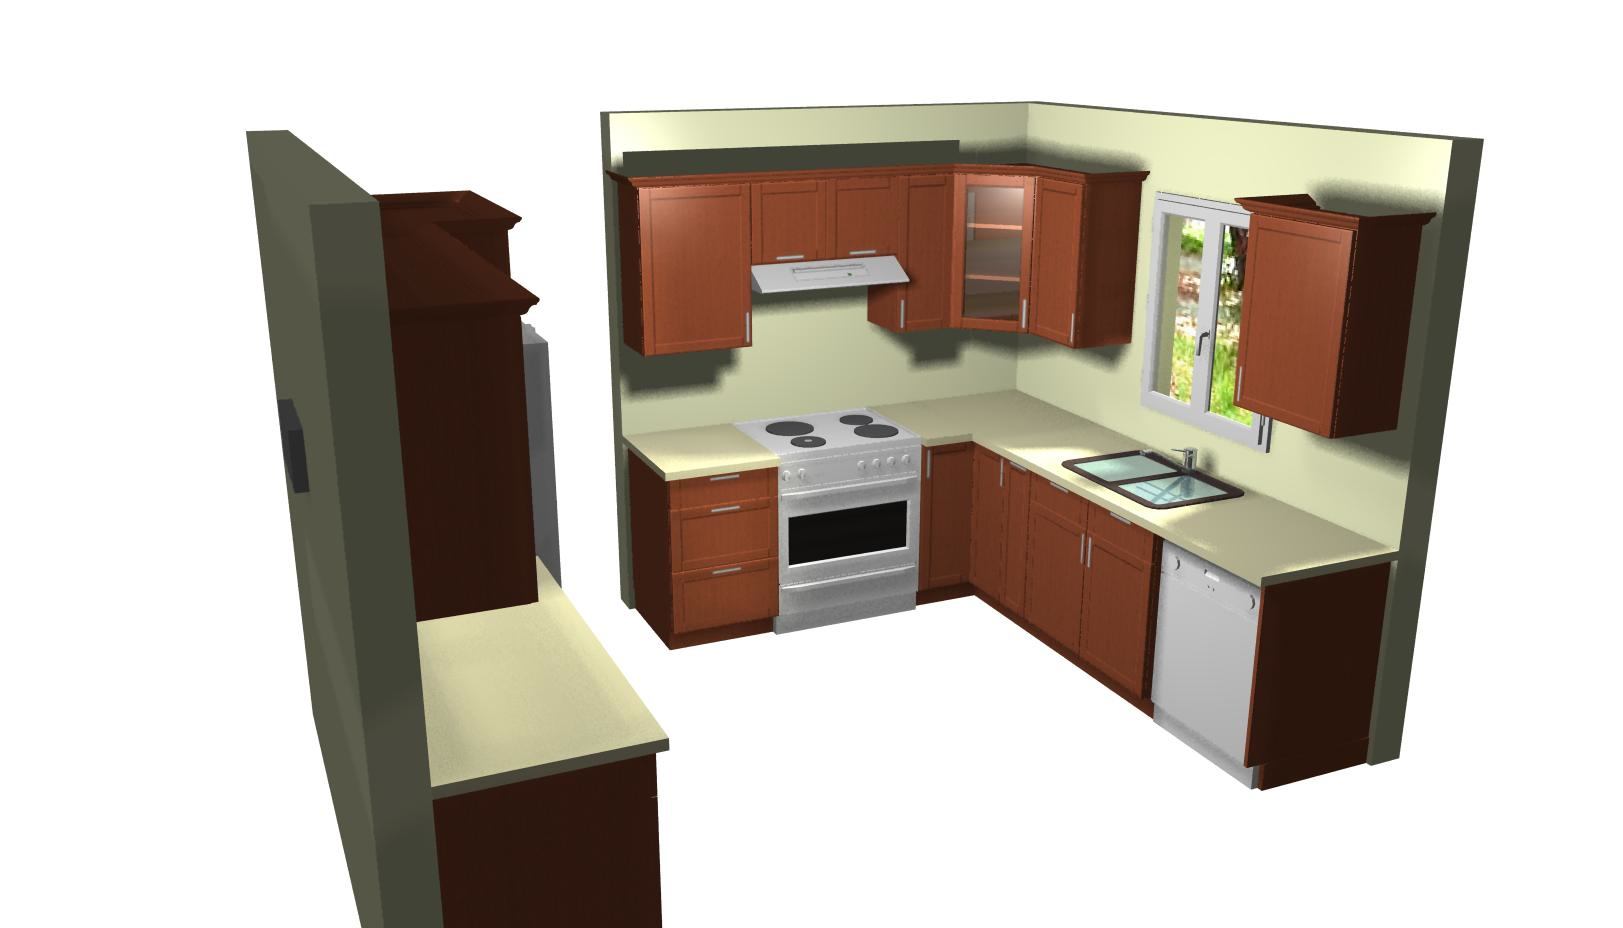 kitchen cabinets layout ideas photo - 3